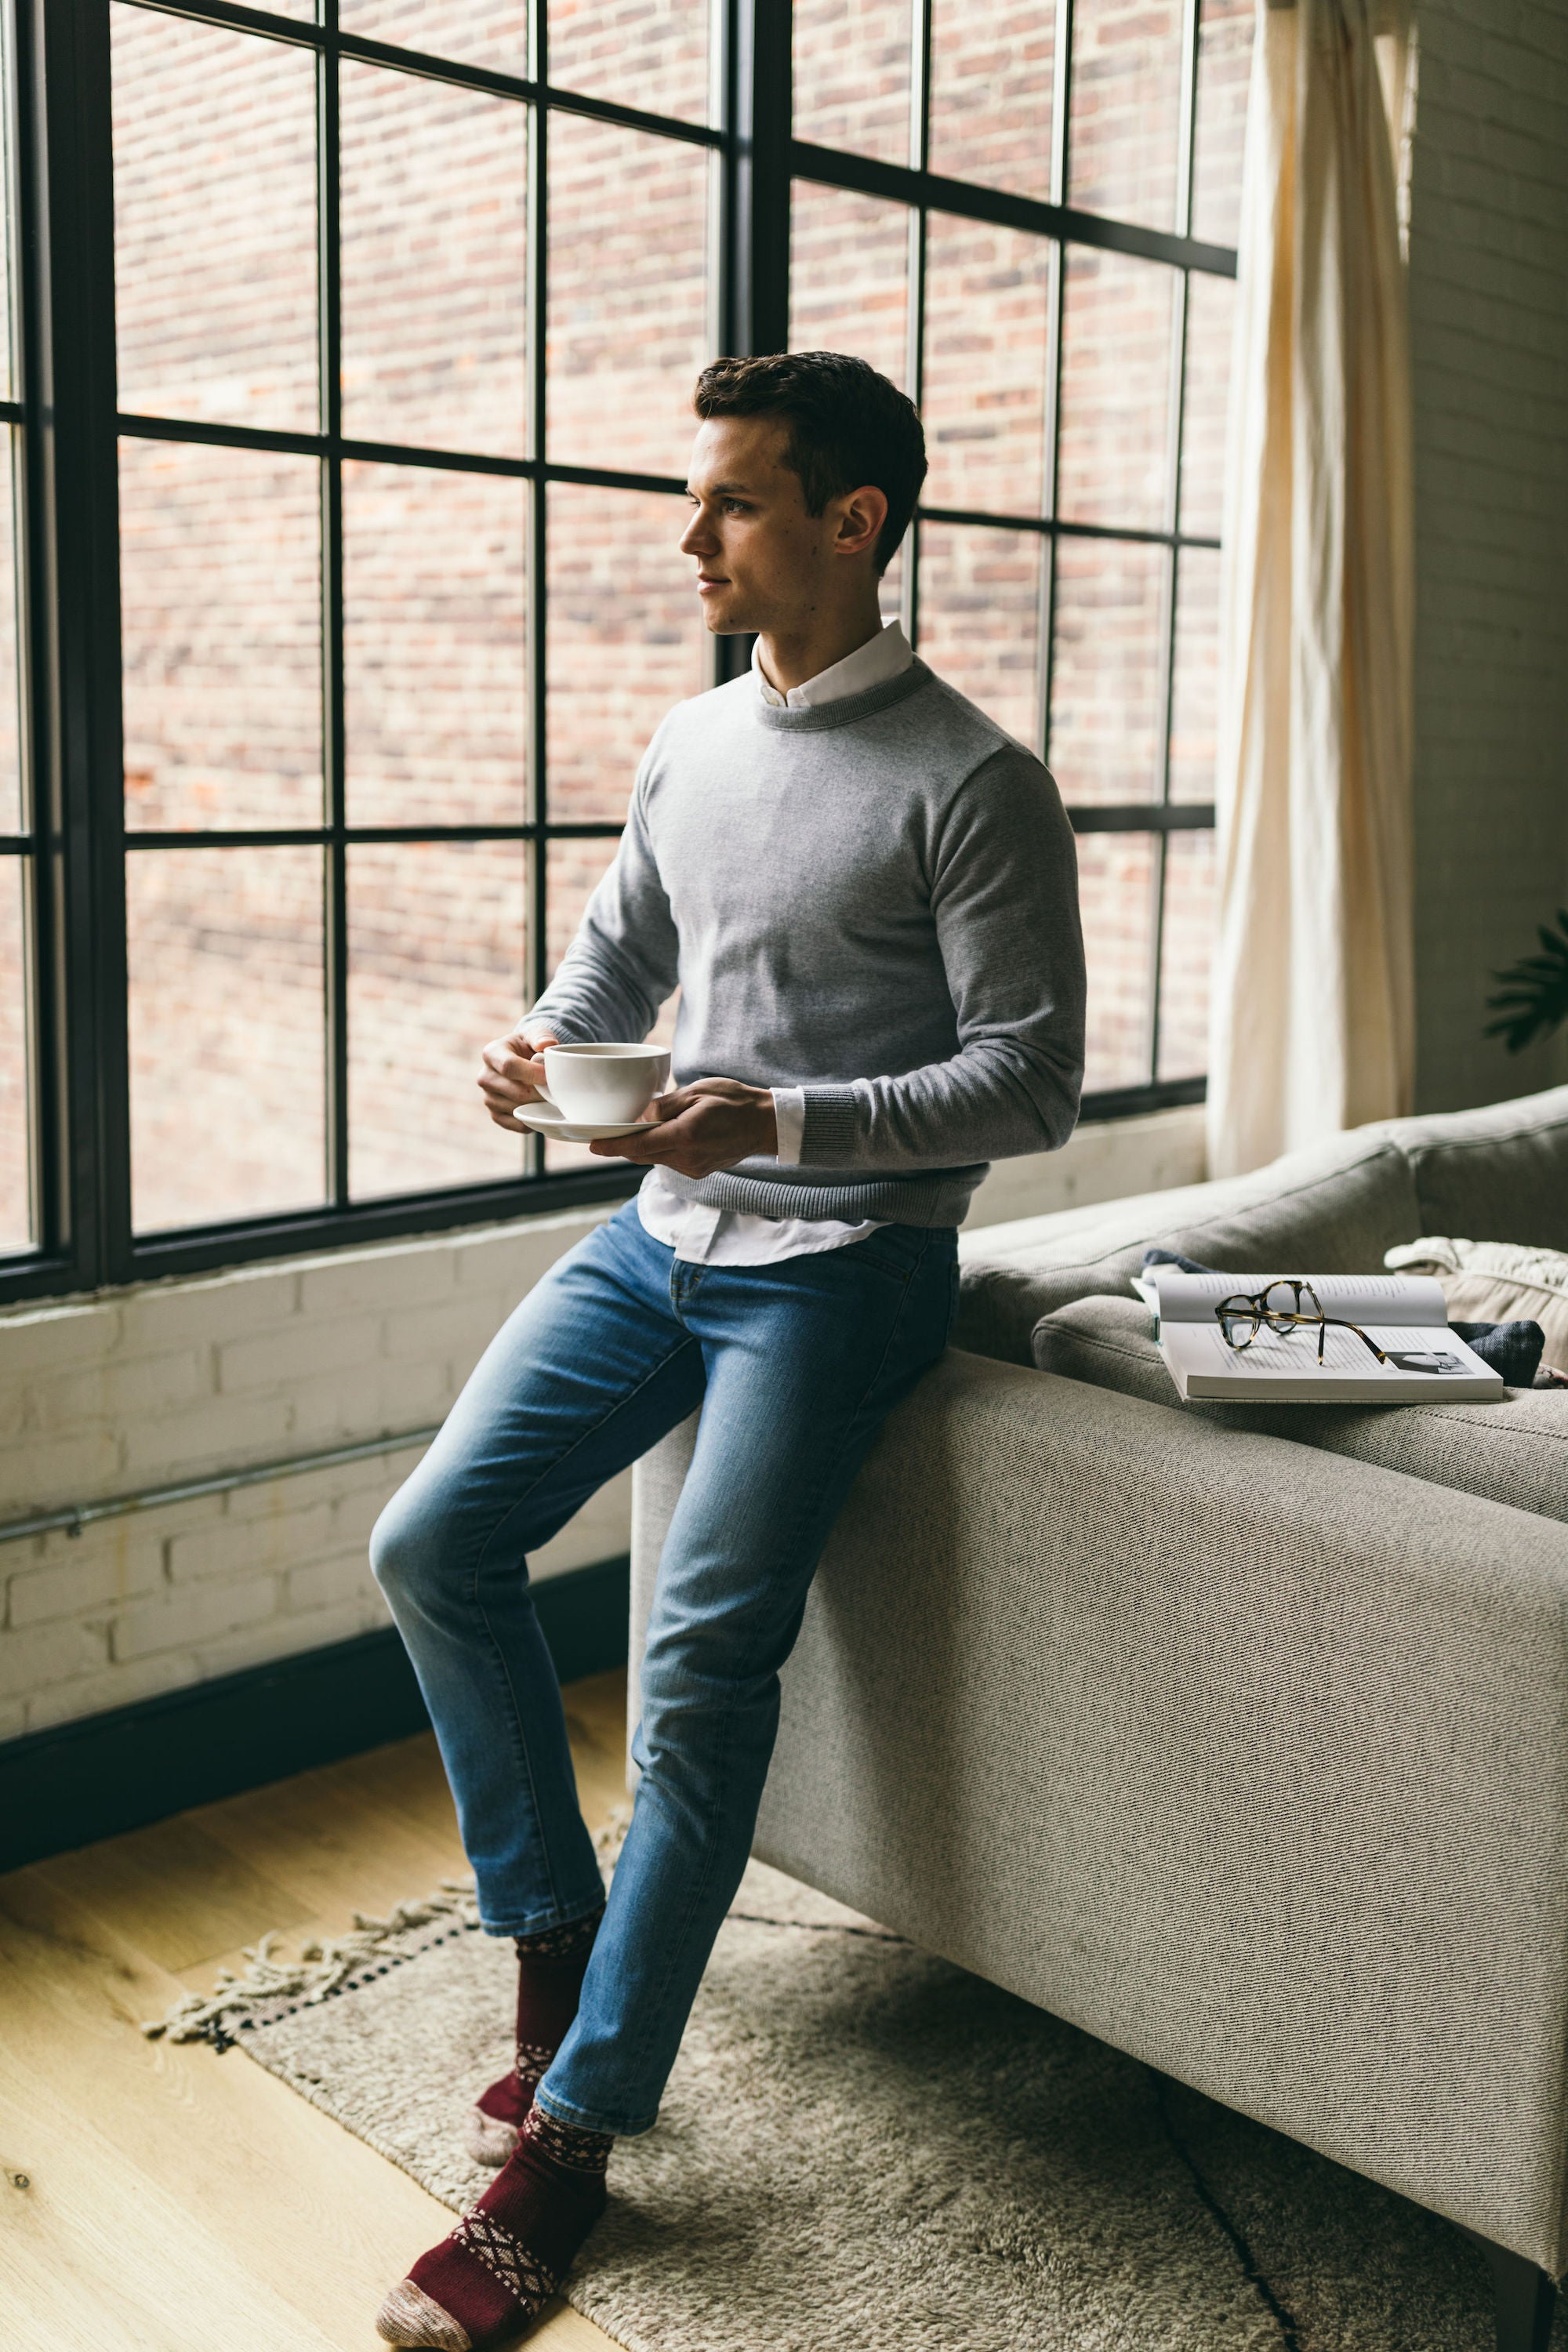 How to Wear Layers: 4 Rules + 19 Outfit Ideas for Guys